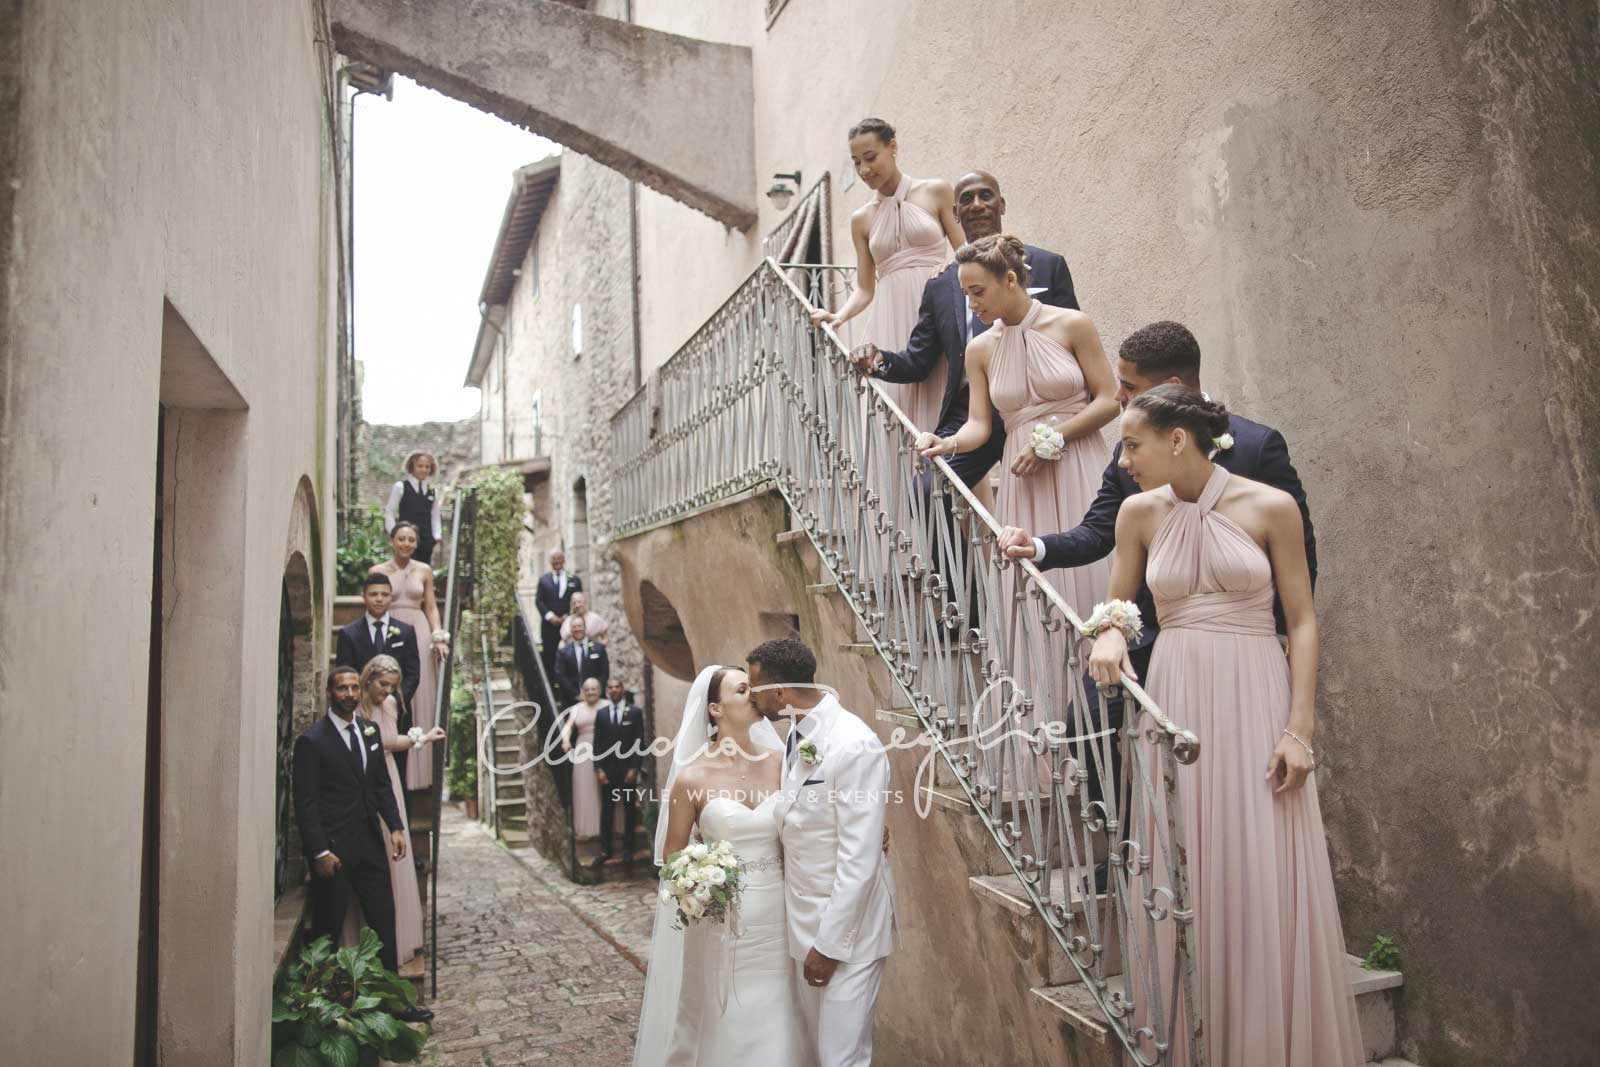 20-Kiss-the-Bride-stairs-parents-guests-witness-memorablemoments